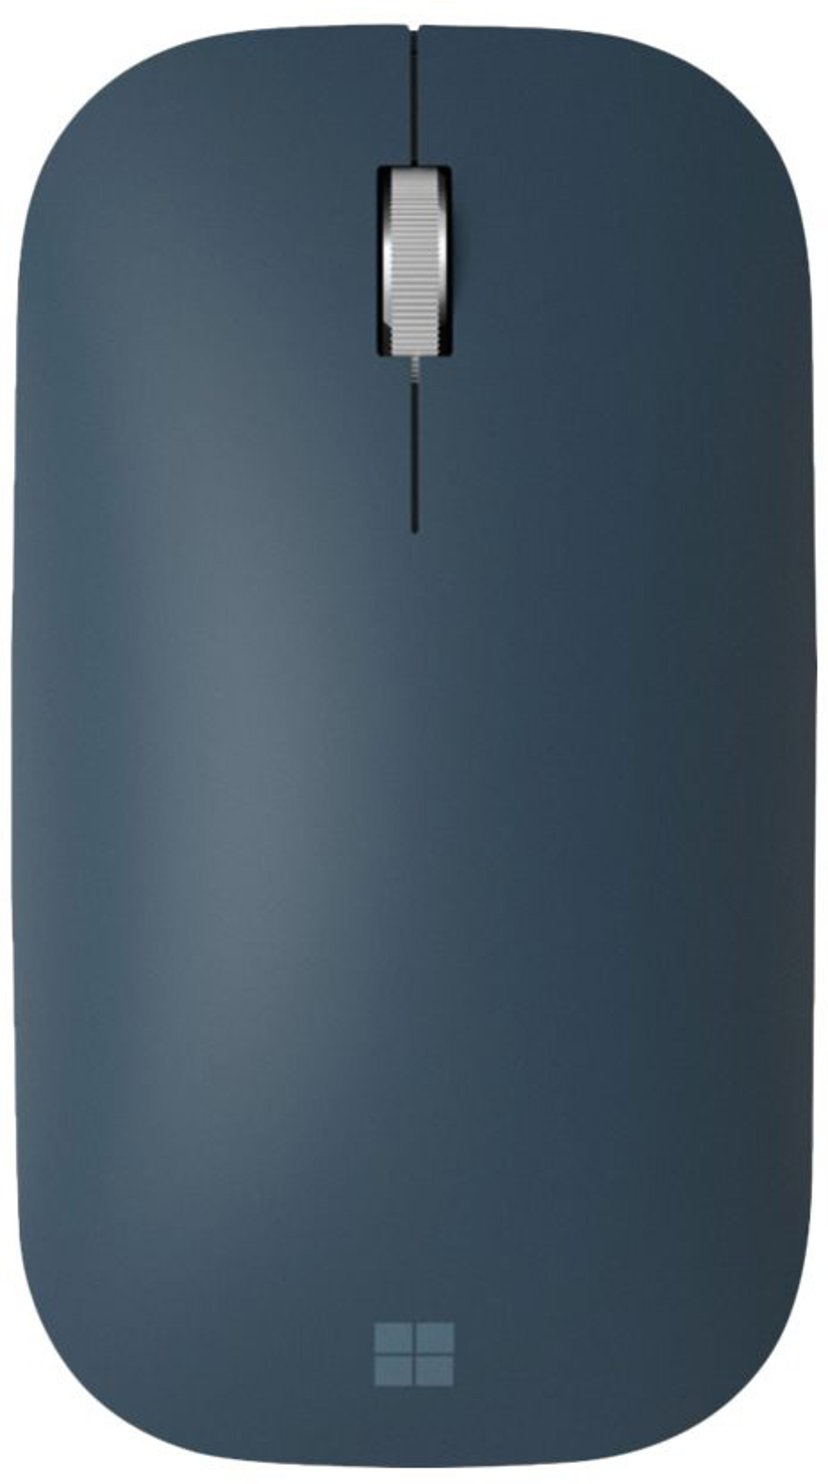 Microsoft Surface Mobile Mouse Muis Draadloos Blauw